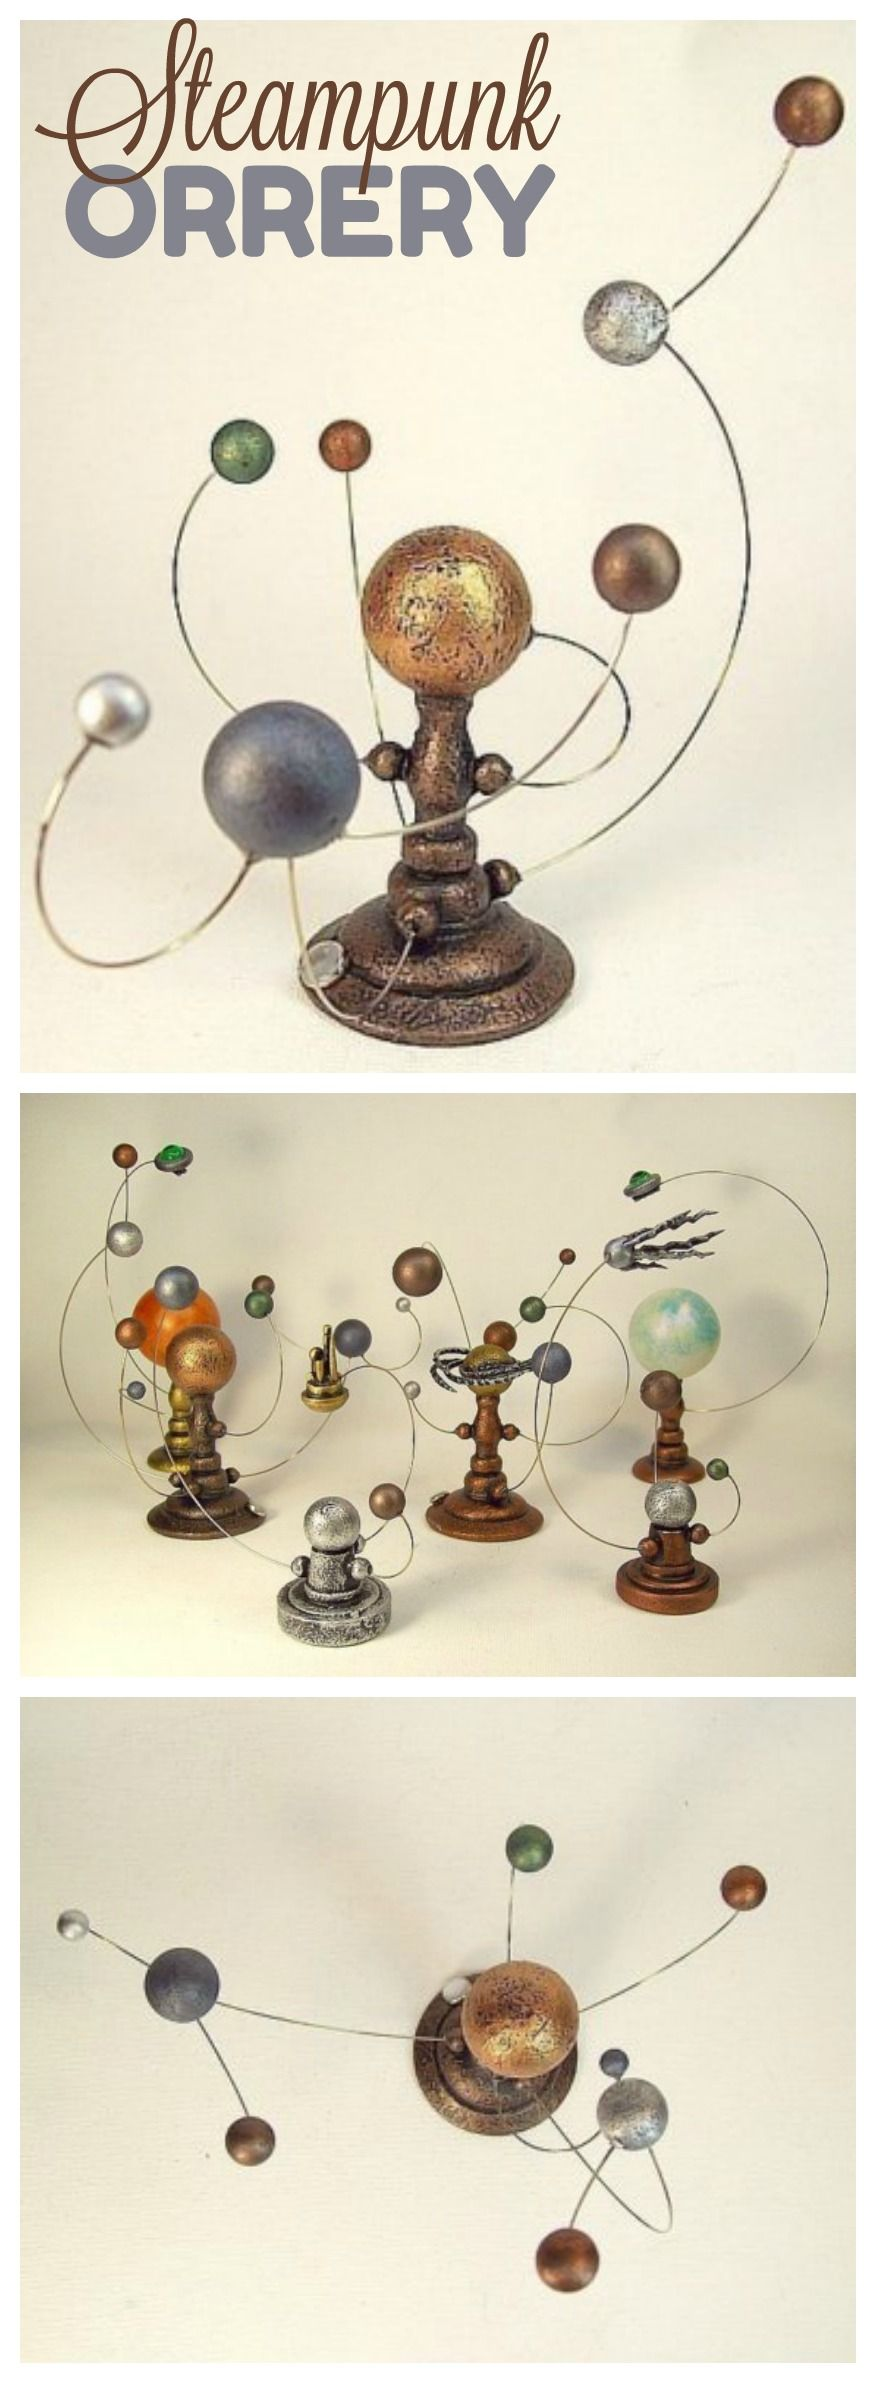 15 Steampunk Bedroom Decorating Ideas for your Home   Bedrooms ...